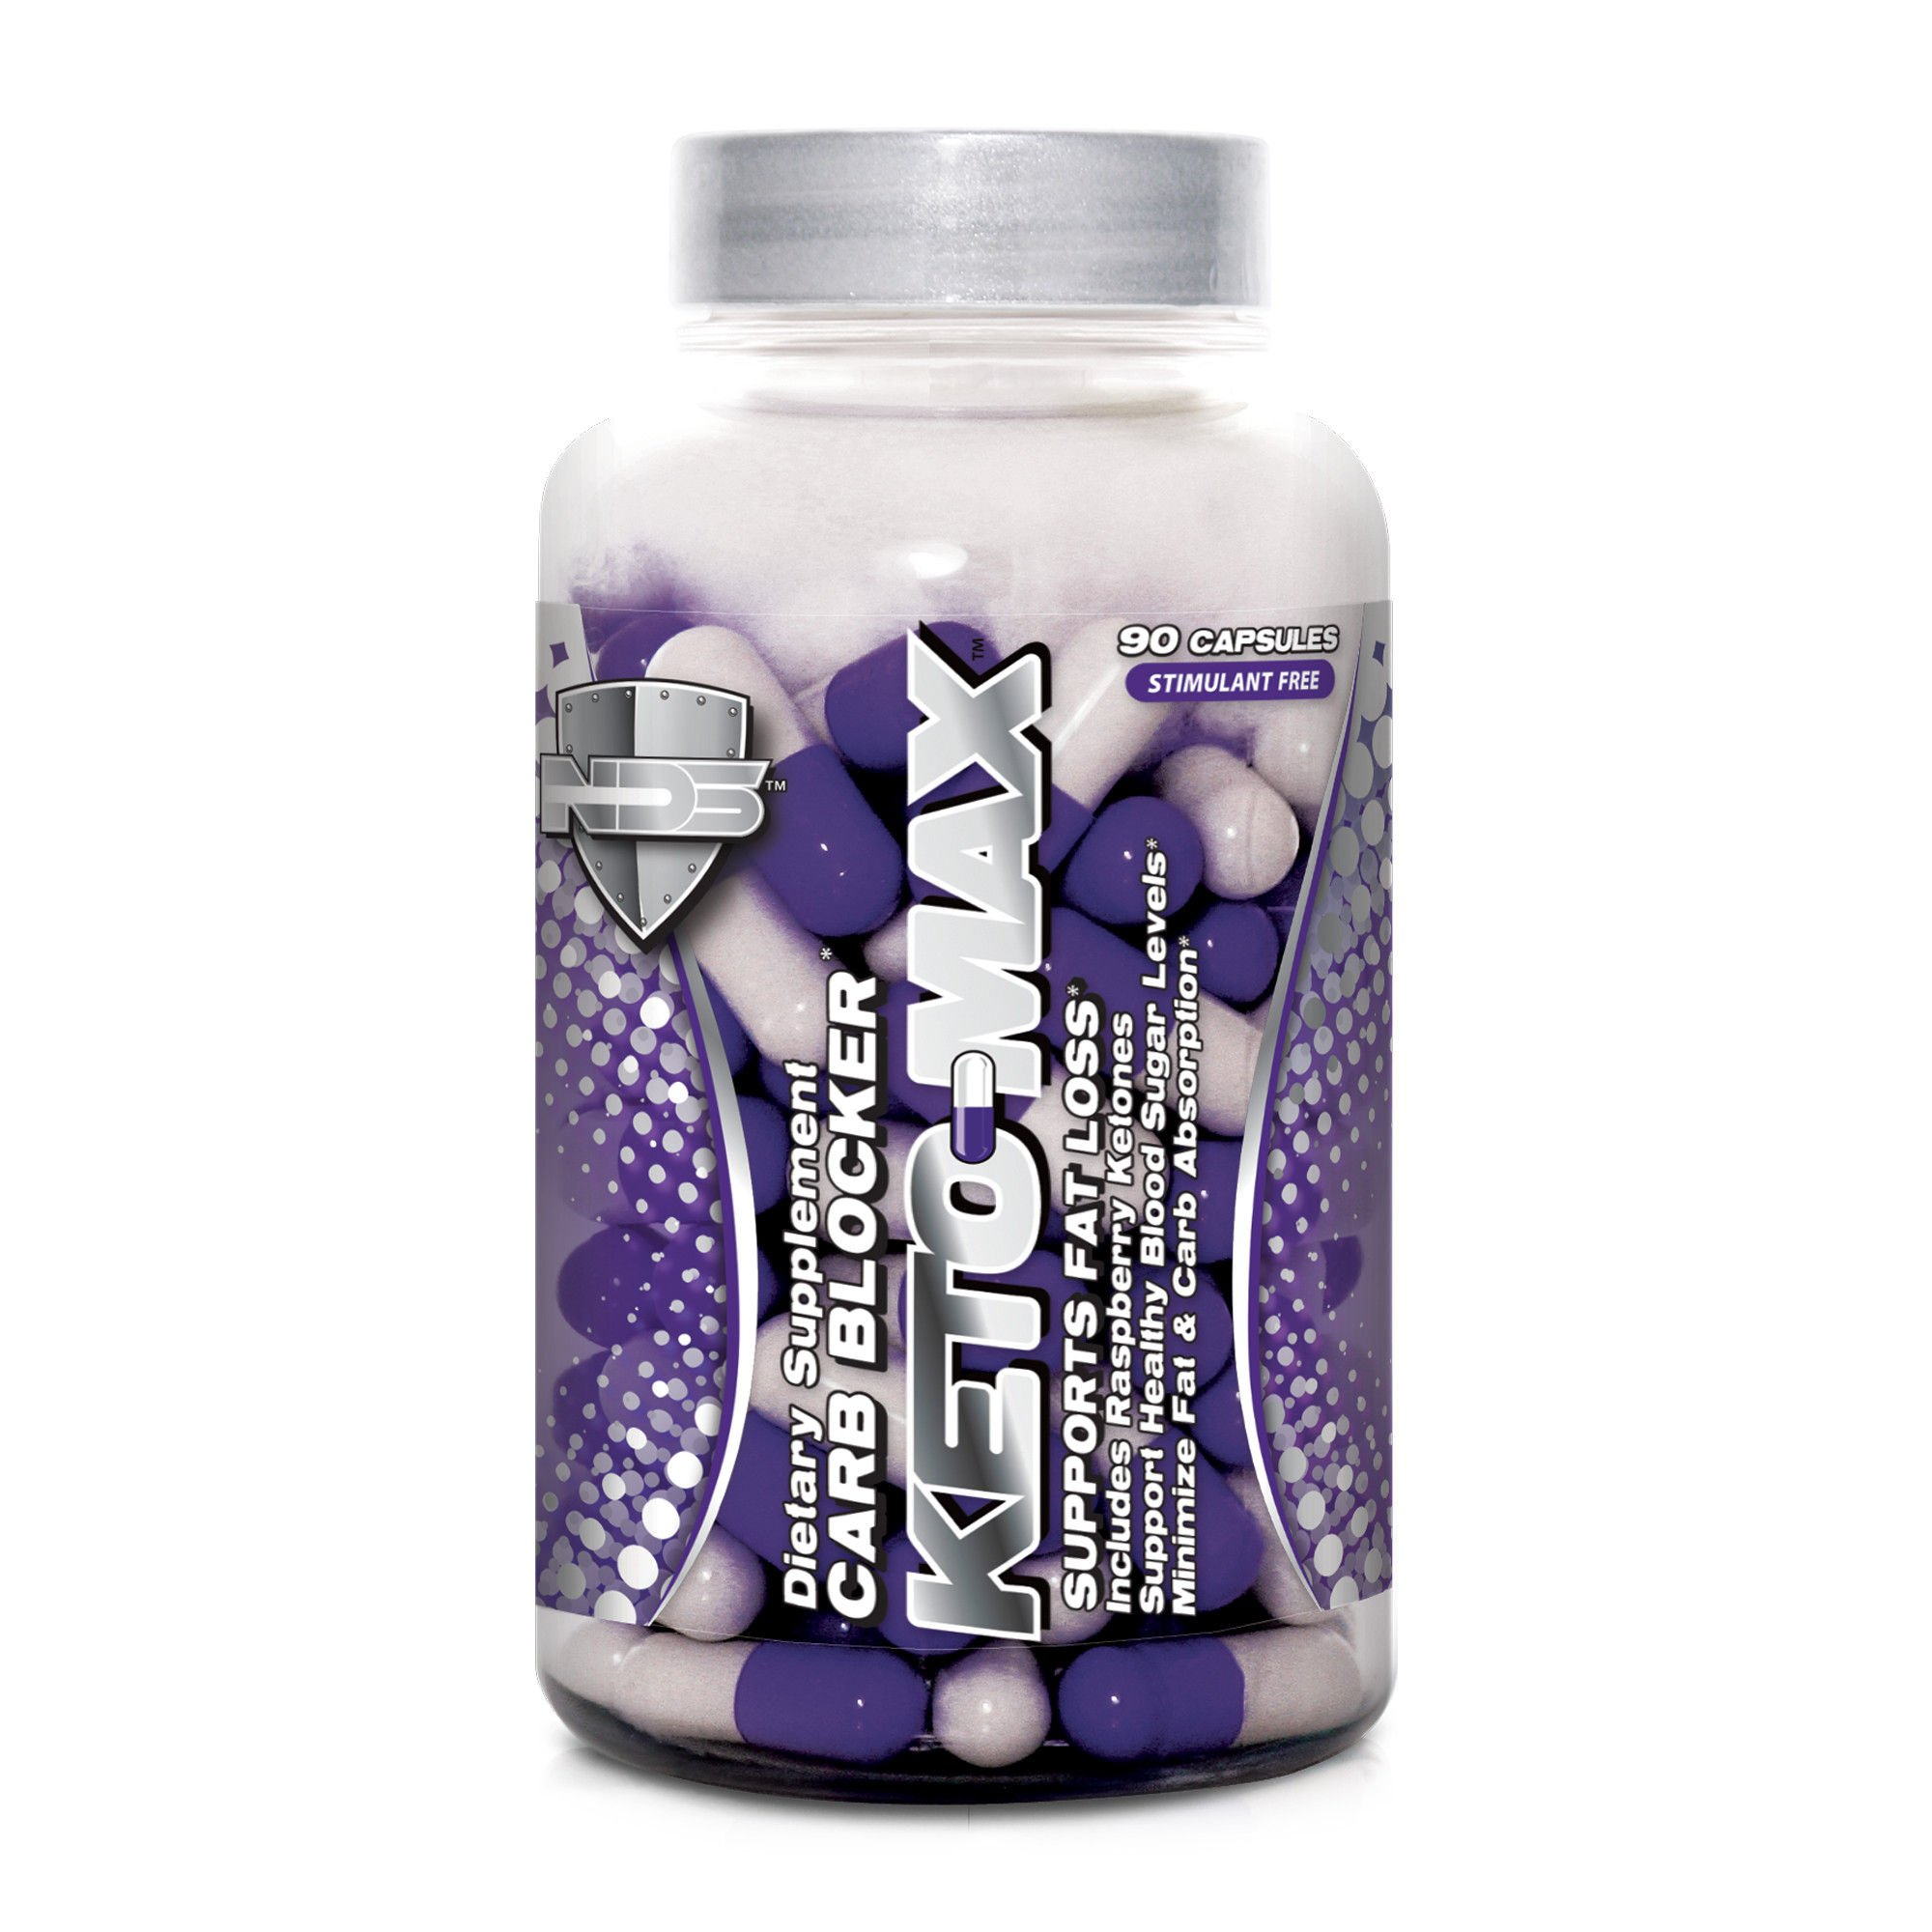 NDS Nutrition Keto-Max - Carbohydrate And Fat Blocking Dietary No Supplement With Chromium - Stimulant Fat Burner For A More Toned And Fit Body - 90 Capsules by NDS